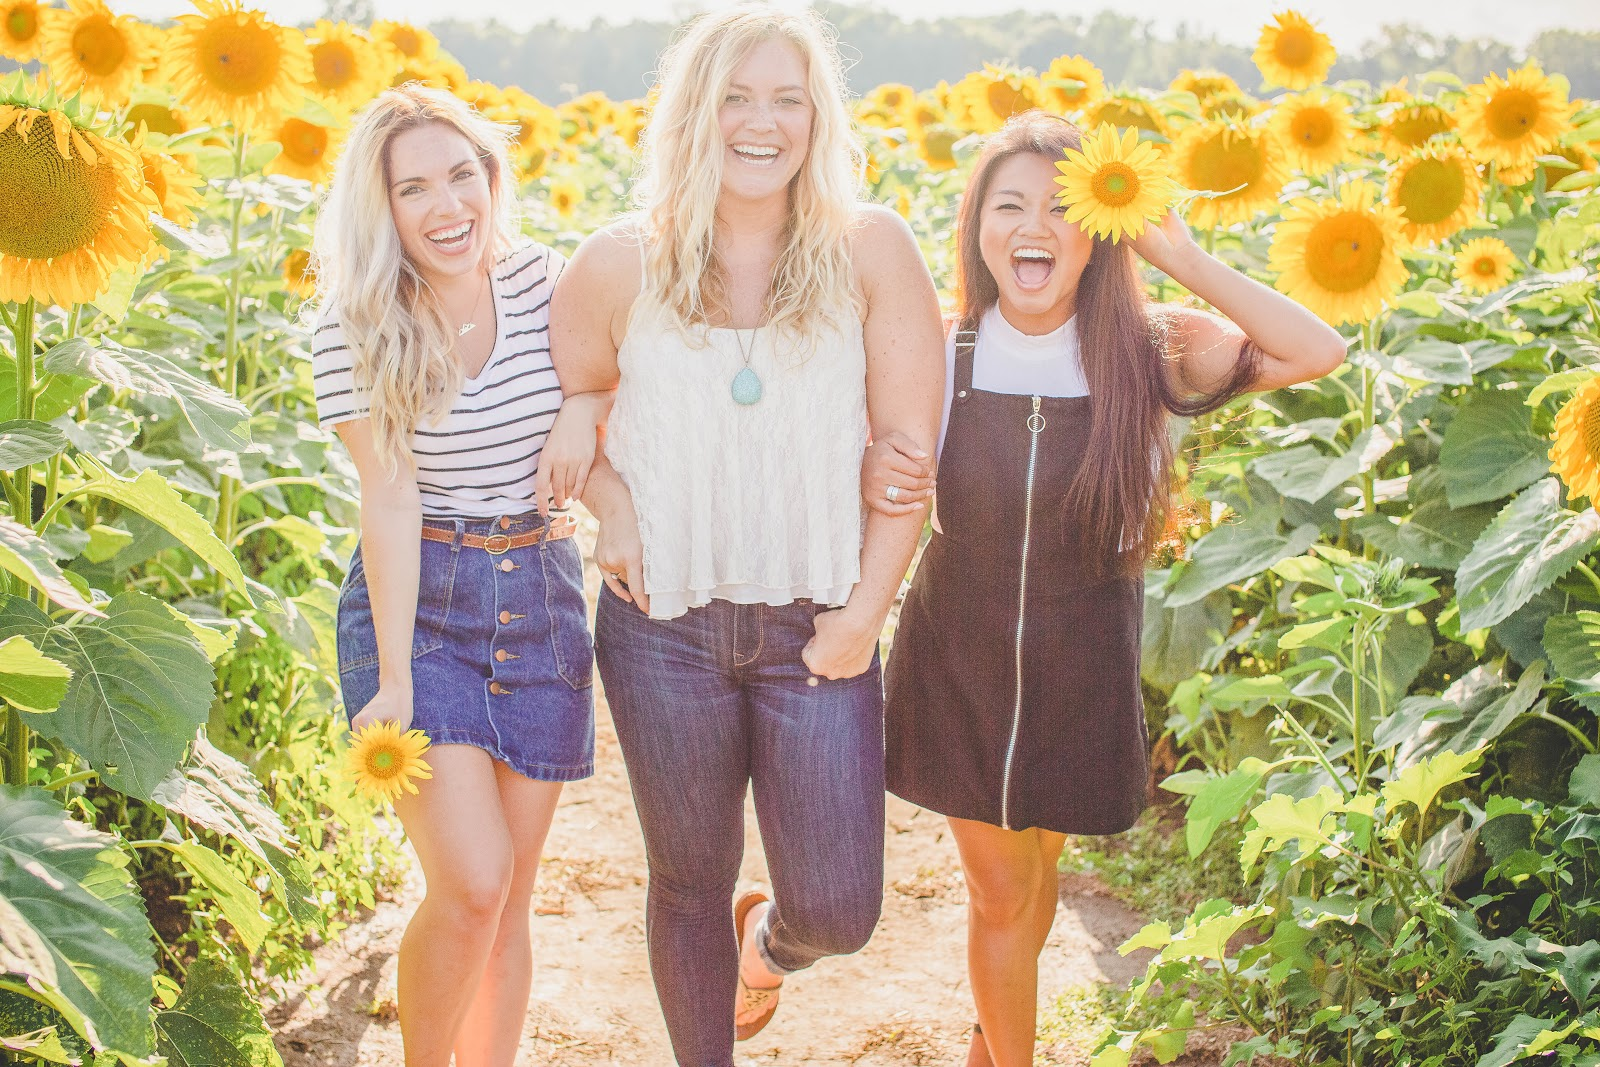 Sorority Women Sunflowers